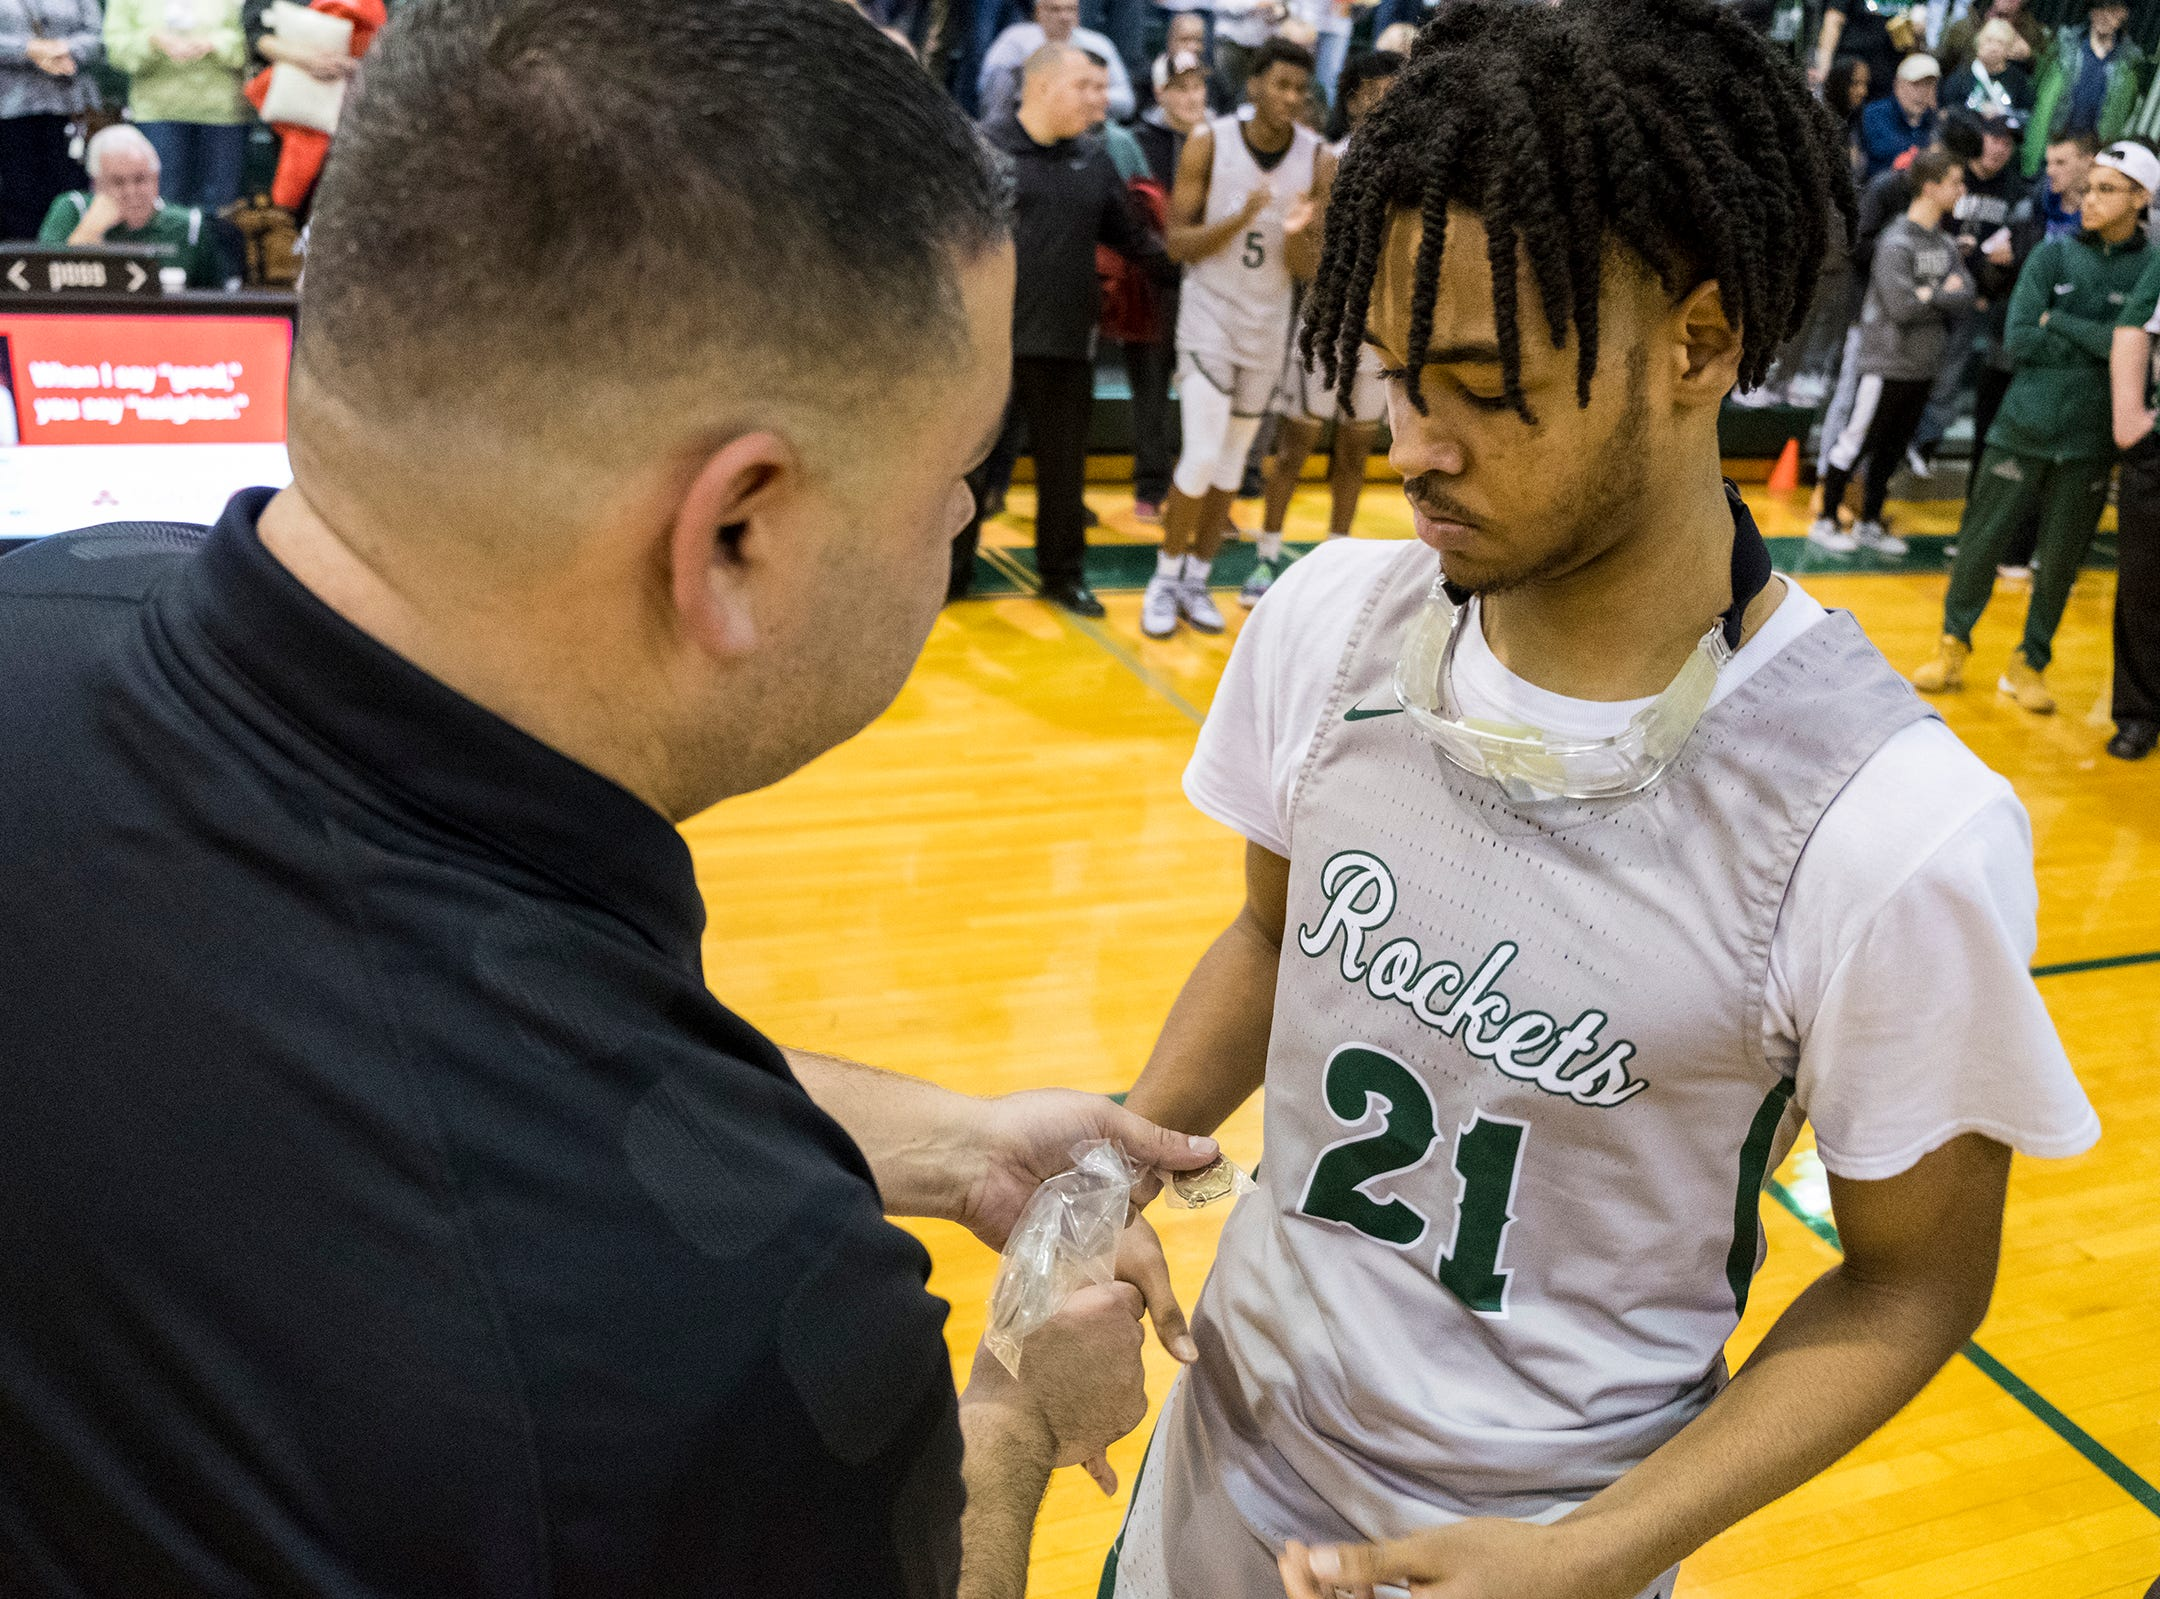 New Haven athletic director Orlando Medina (left) hands a championship medal to guard Jamir Farrior during the MHSAA Division 2 Boys Basketball District Finals Friday, March 1, 2019 at New Haven High School.